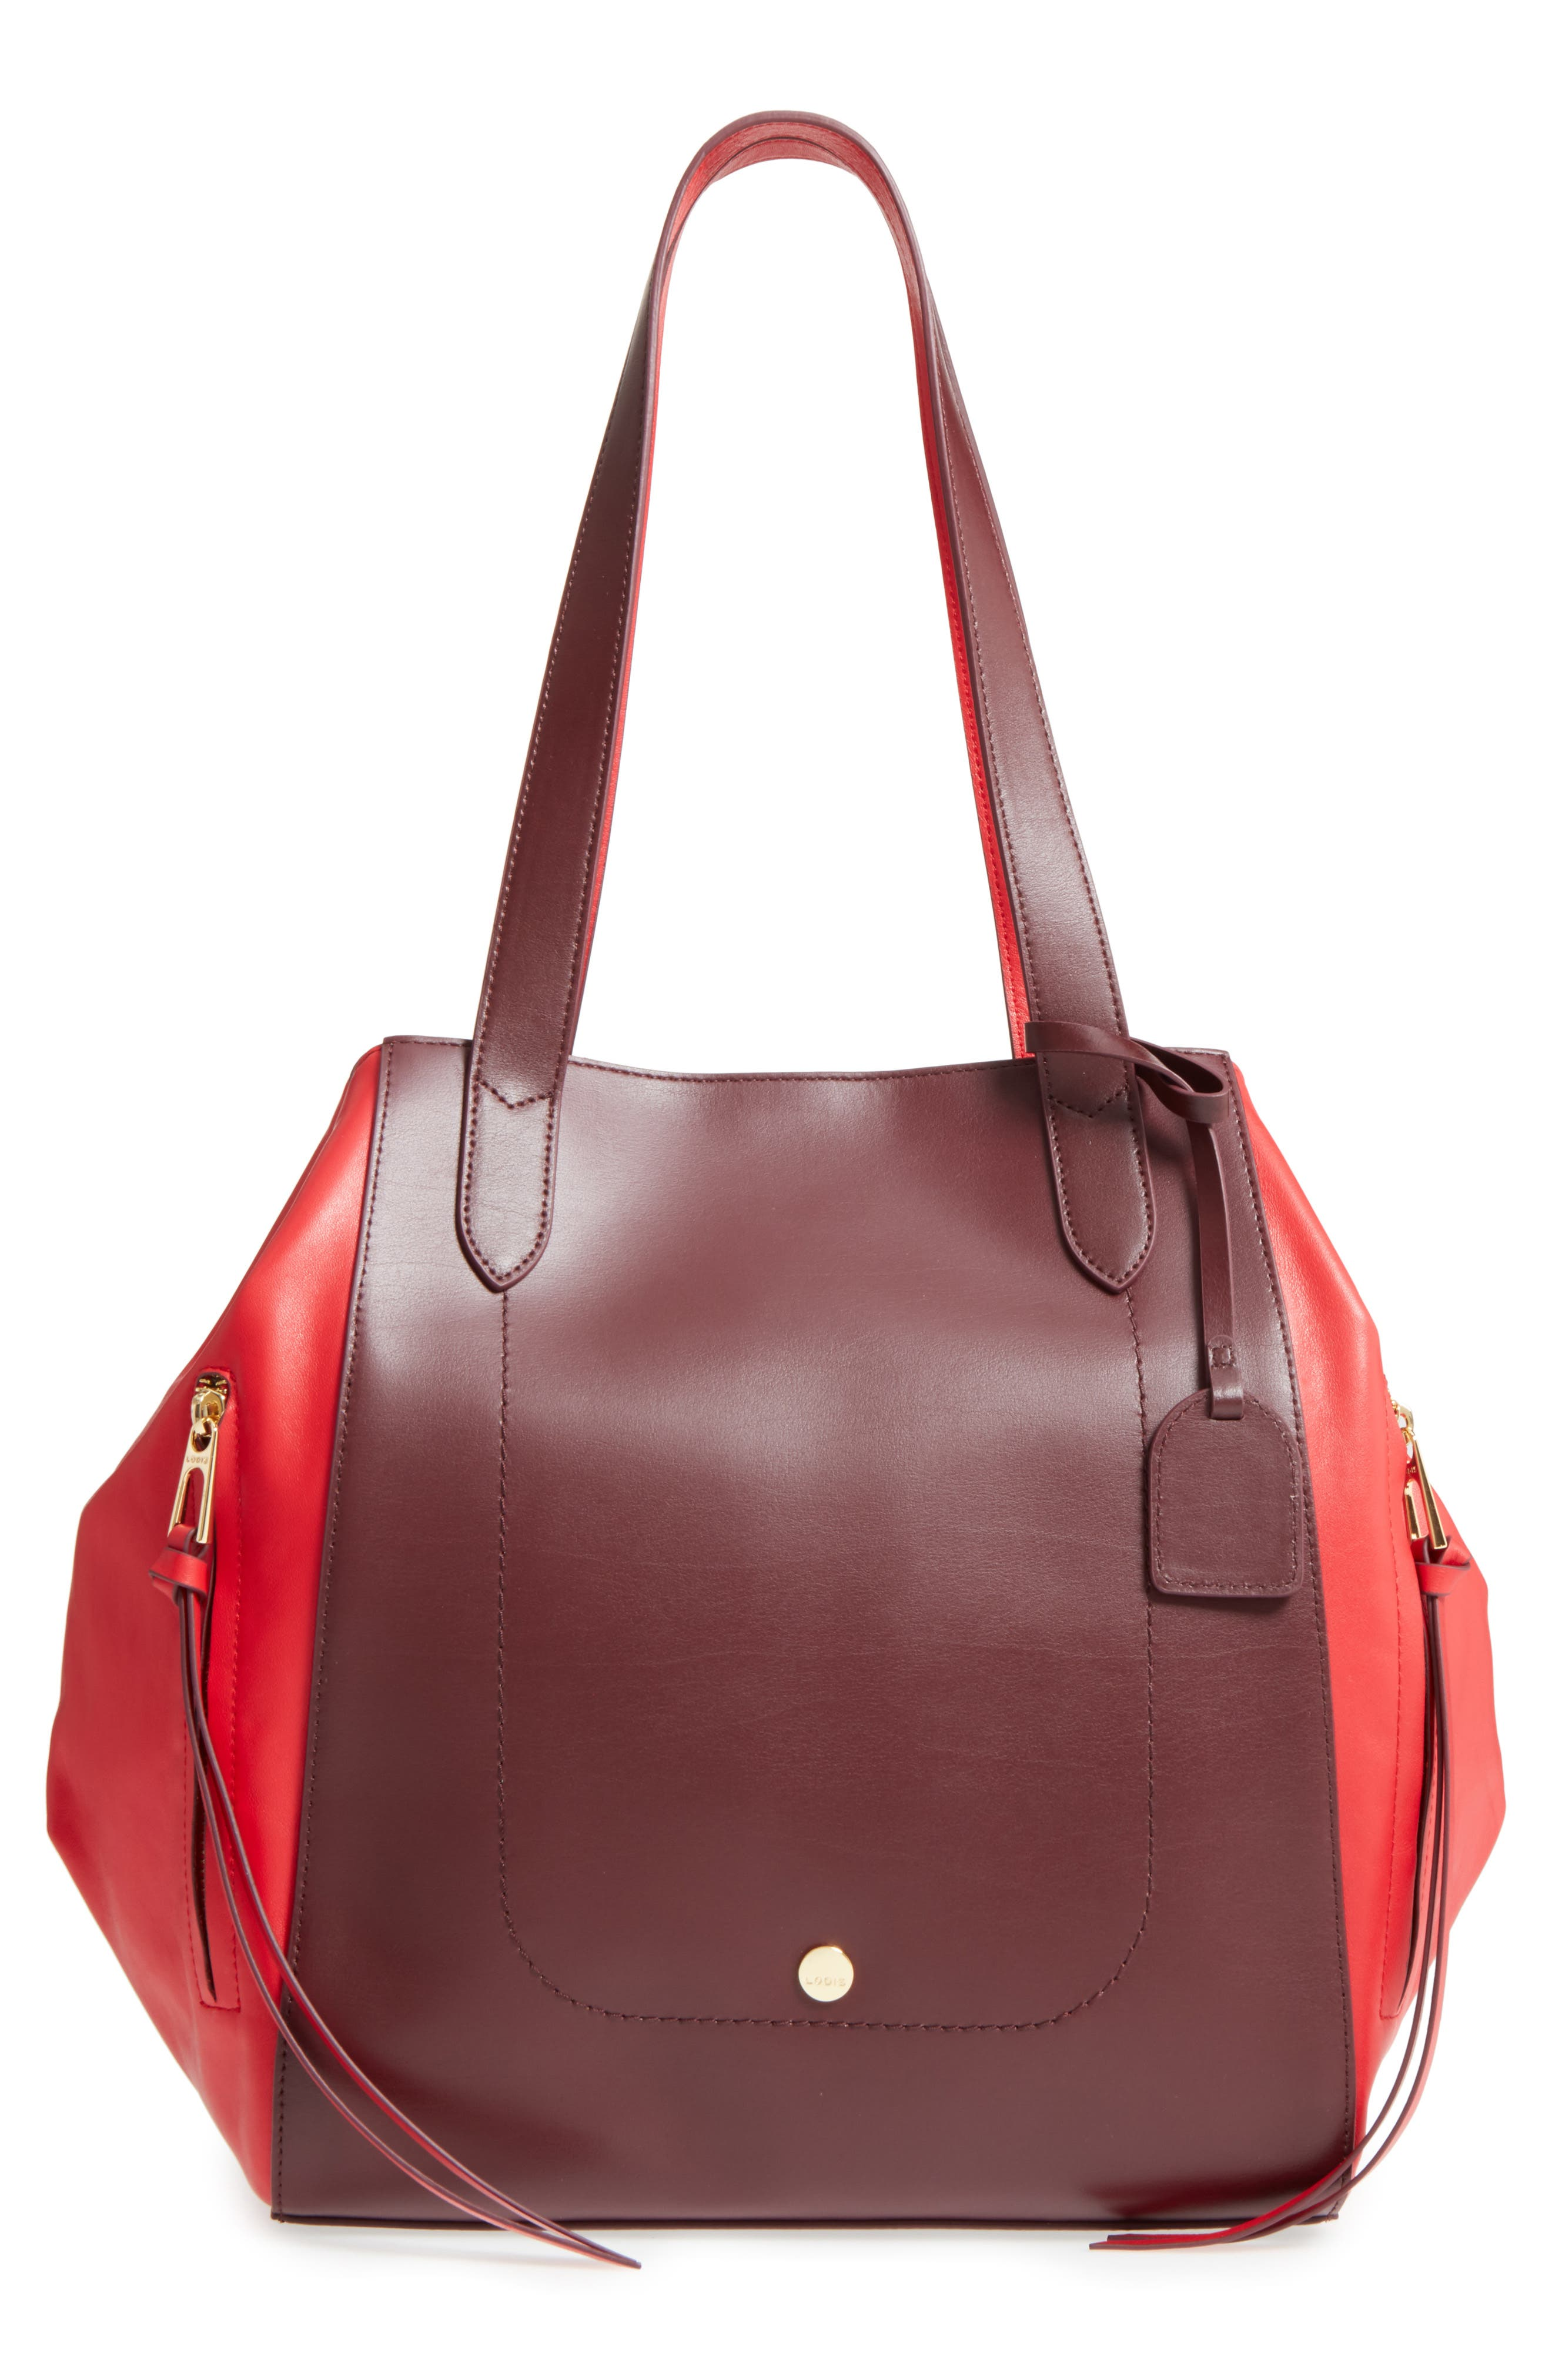 Downtown Charlize RFID Leather Tote,                         Main,                         color, Red/ Chianti